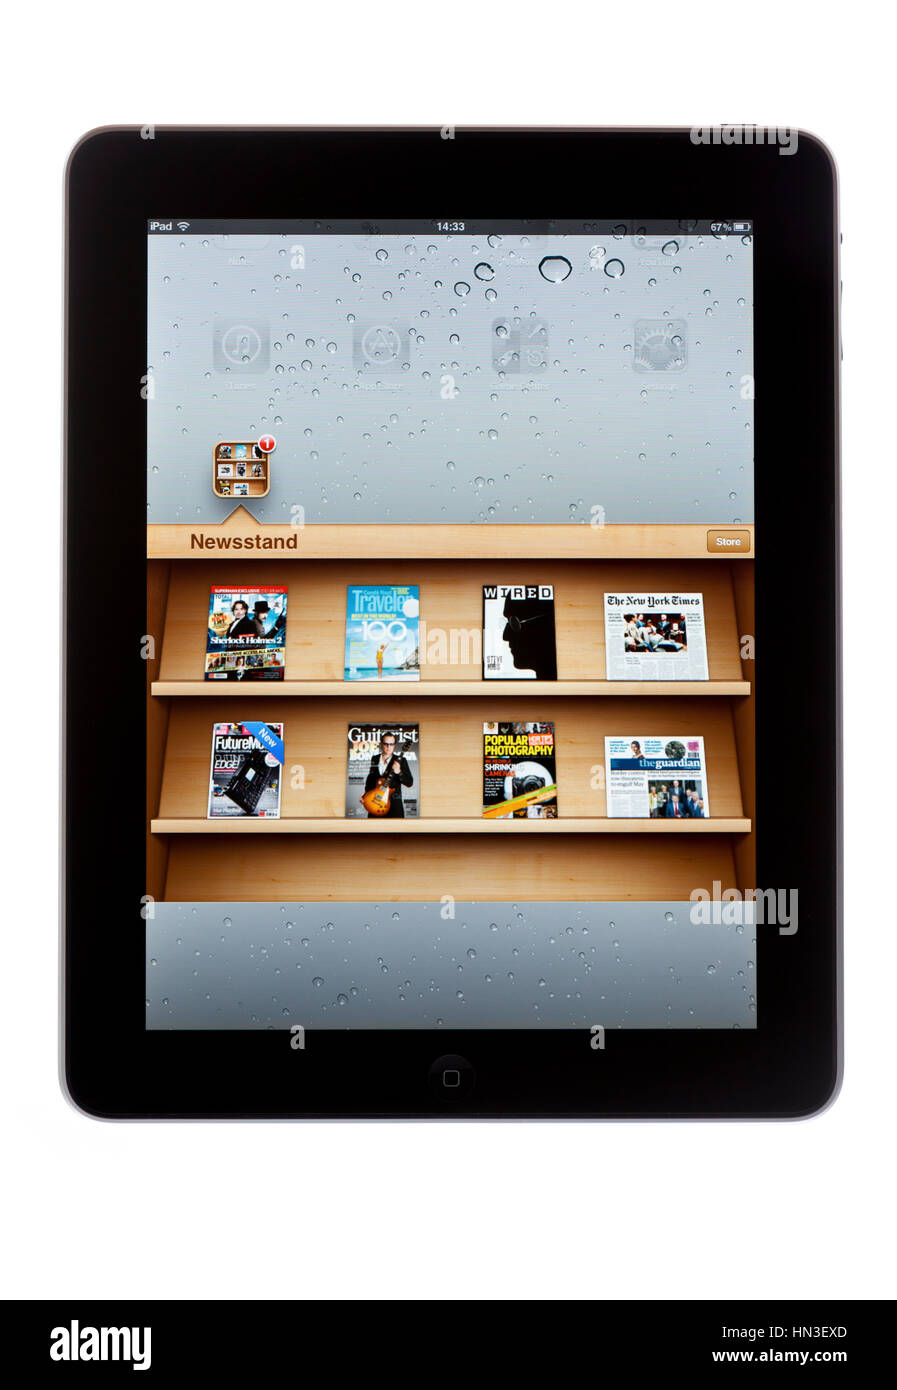 how to delete magazines from newsstand on ipad